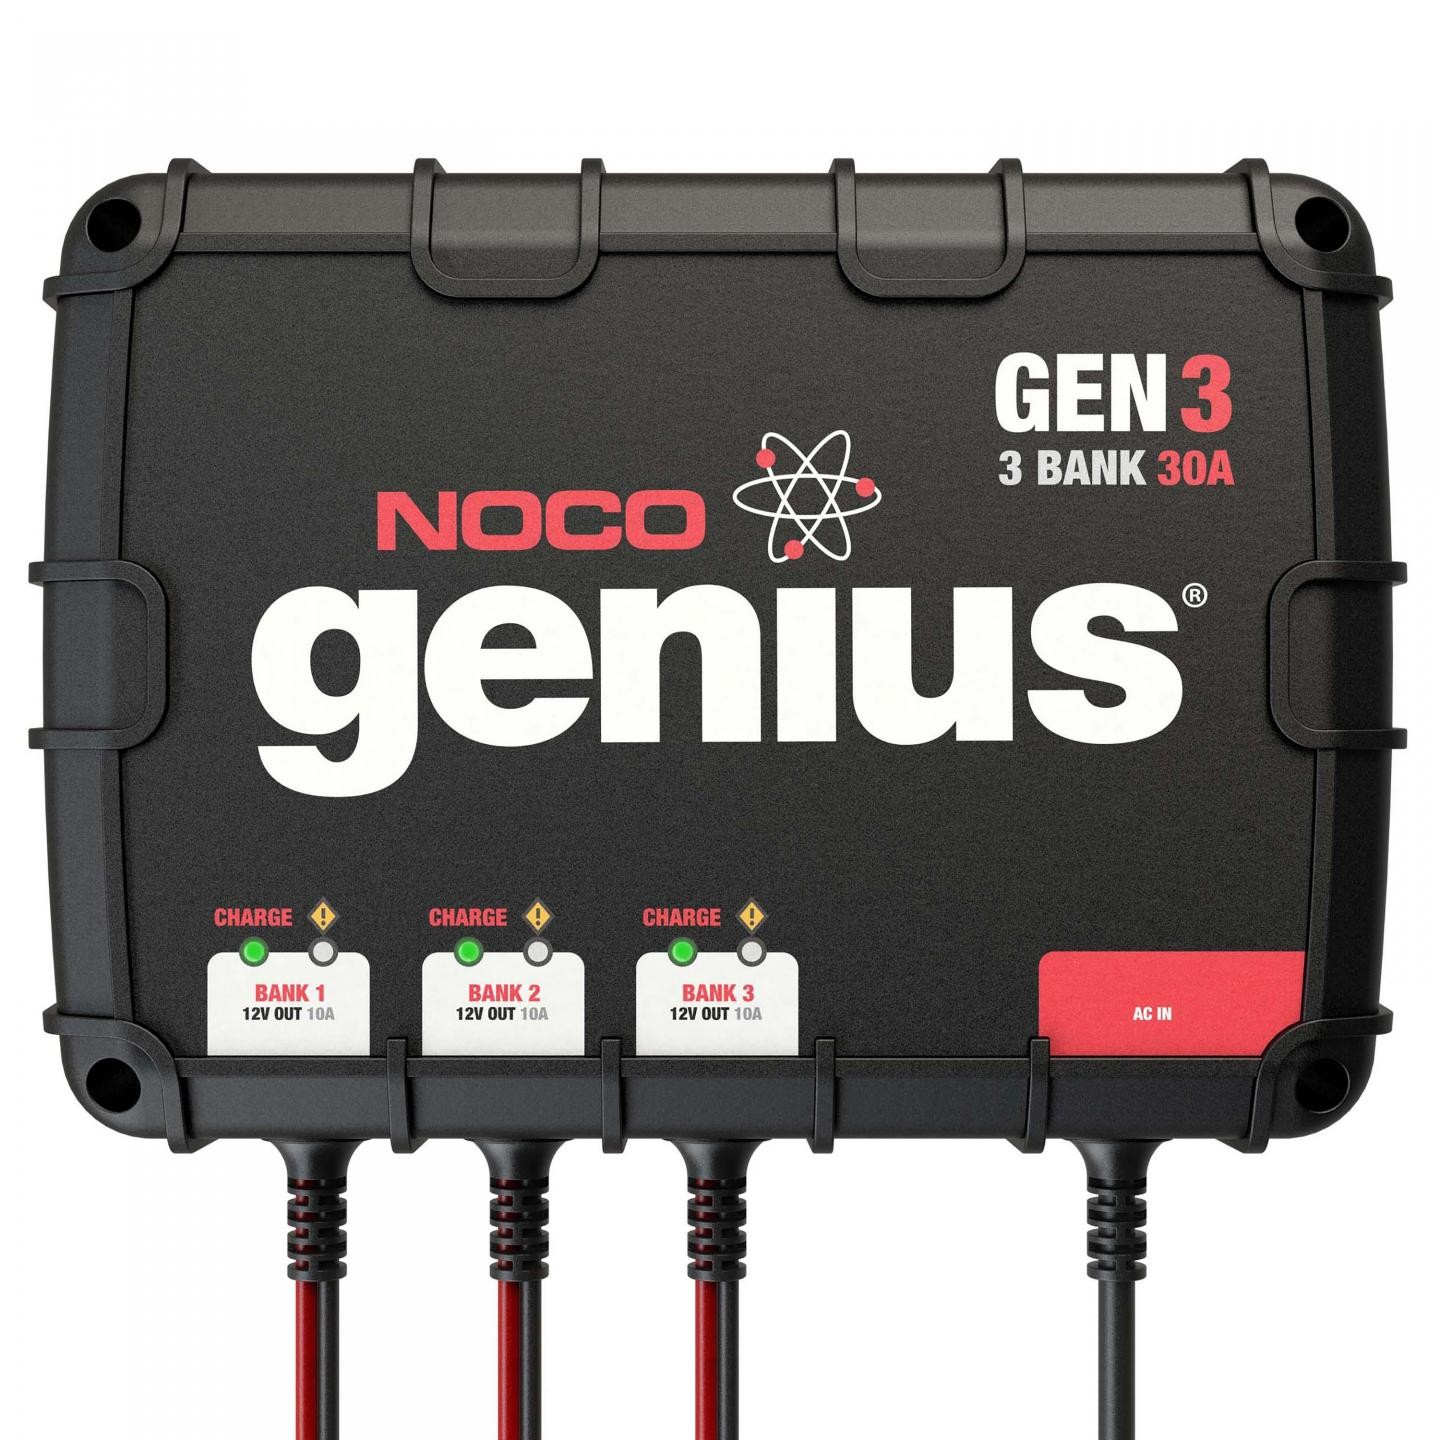 Gen3 3 Bank 30a On Board Battery Charger